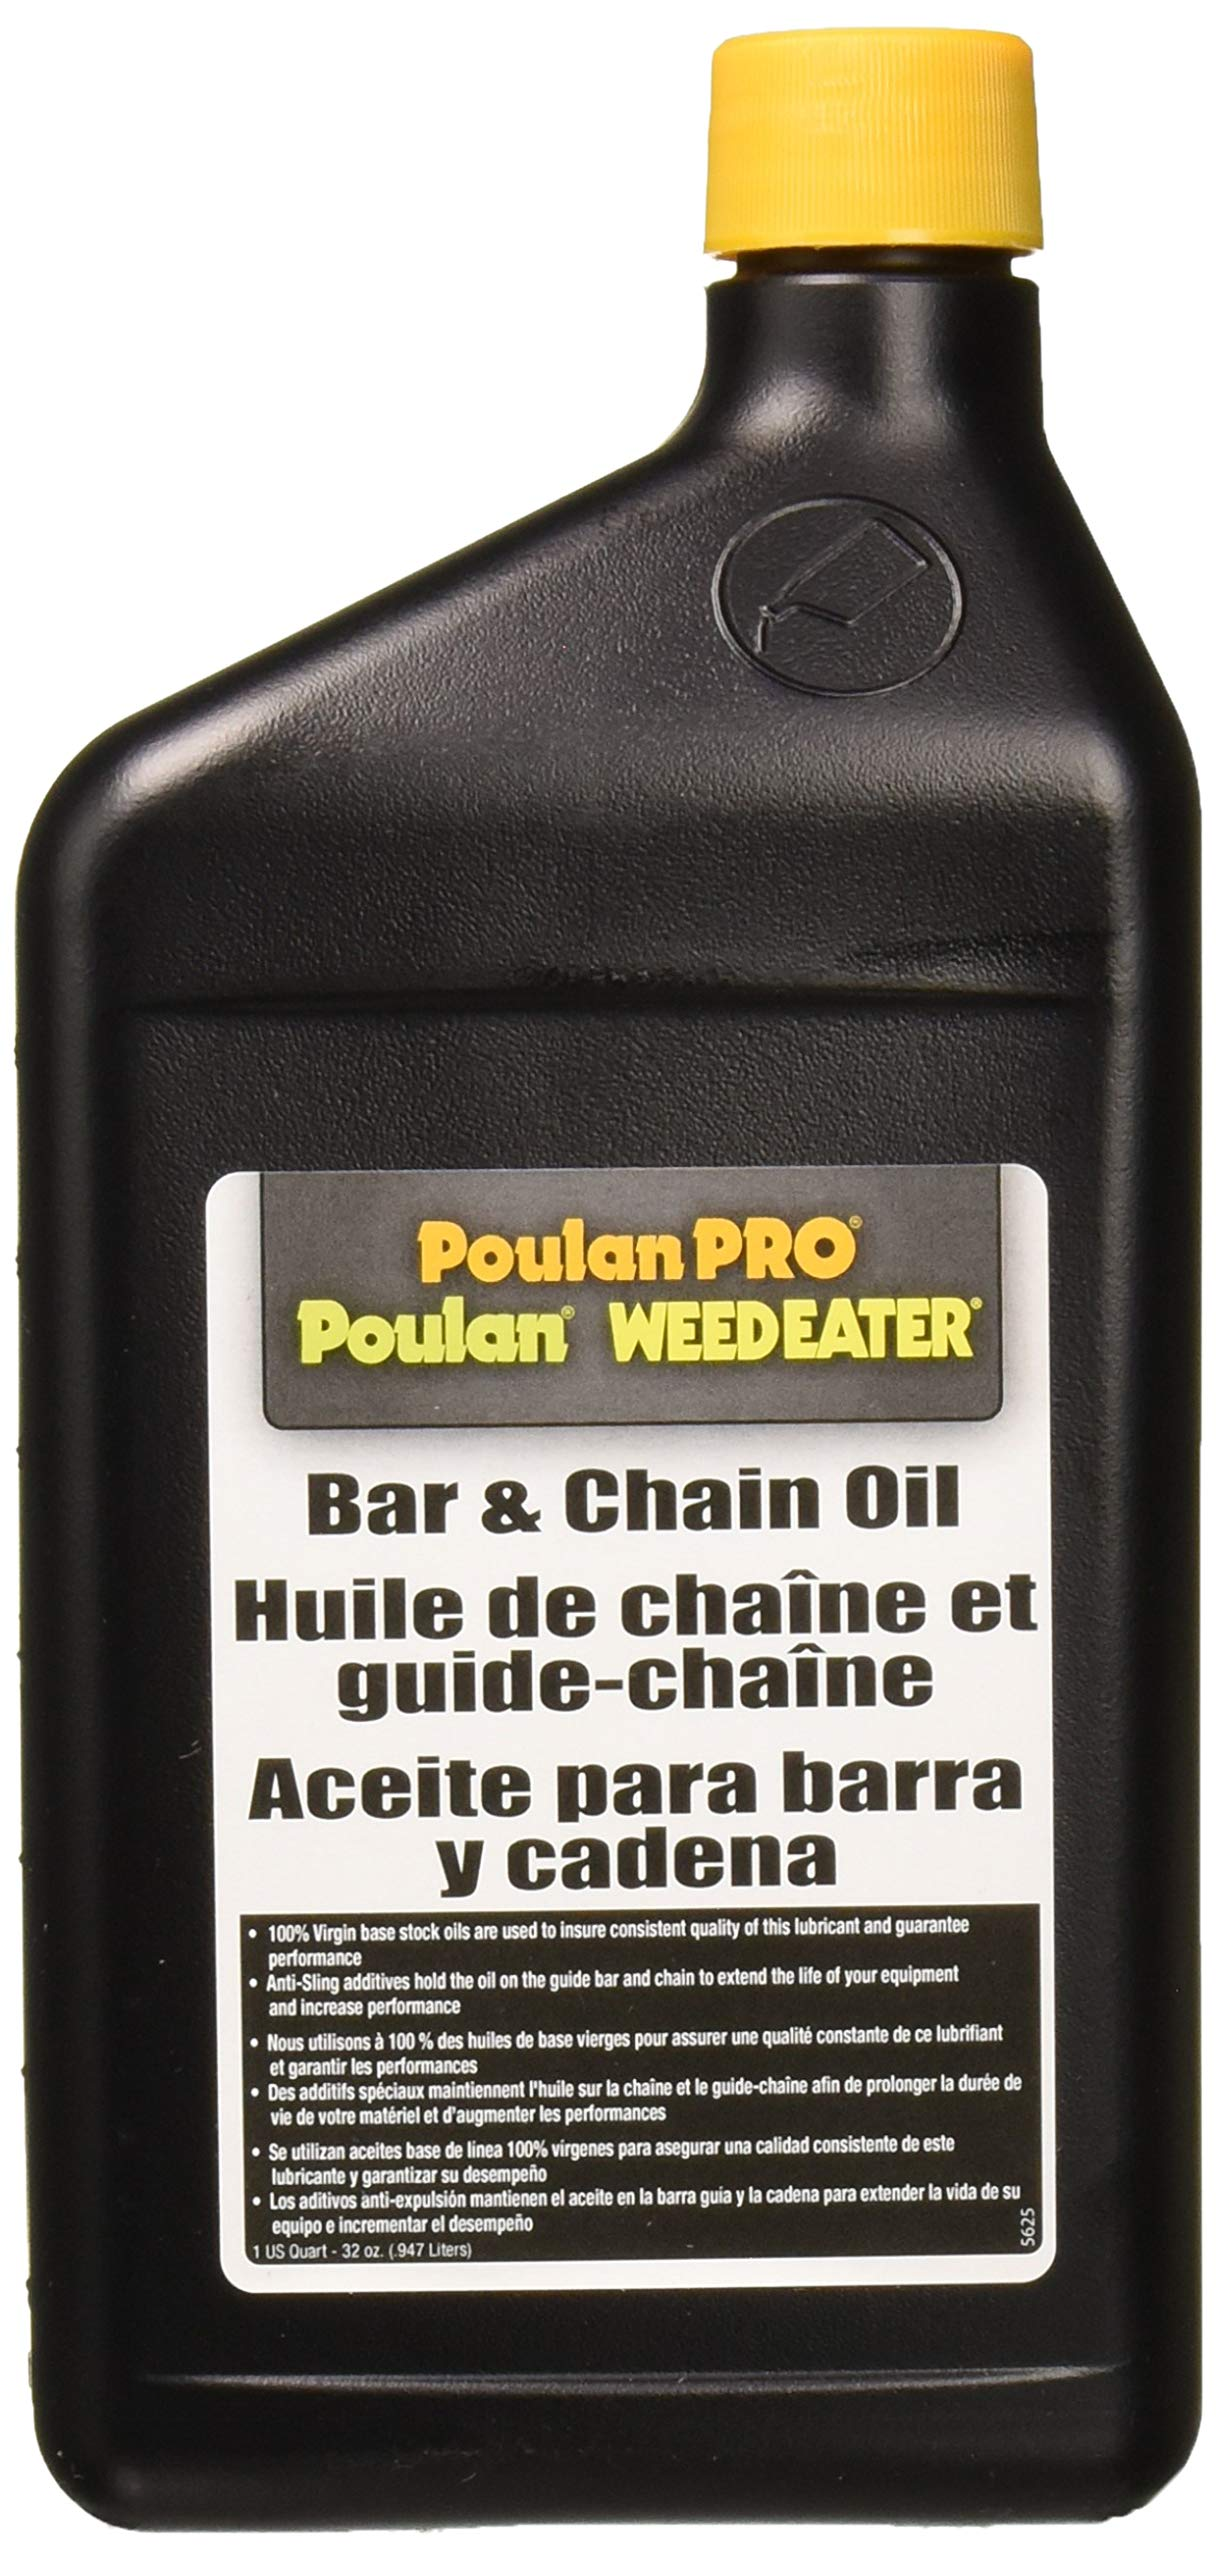 Poulan Pro 952030203 Bar and Chain Oil - 1 Quart by Poulan Pro